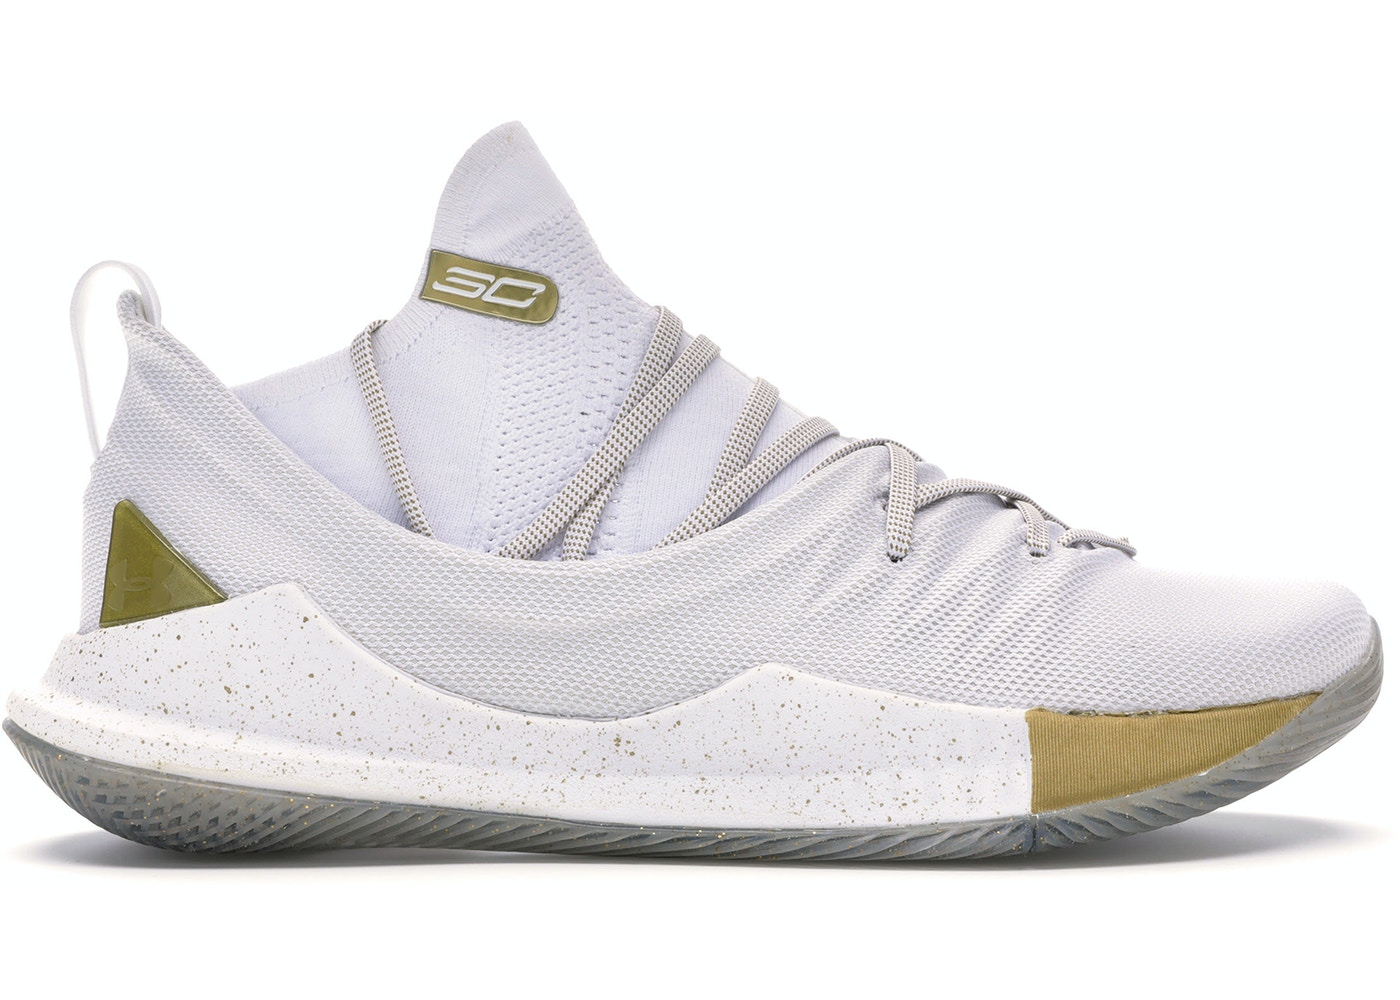 timeless design 20b38 abcc1 Under Armour Curry 5 White Gold